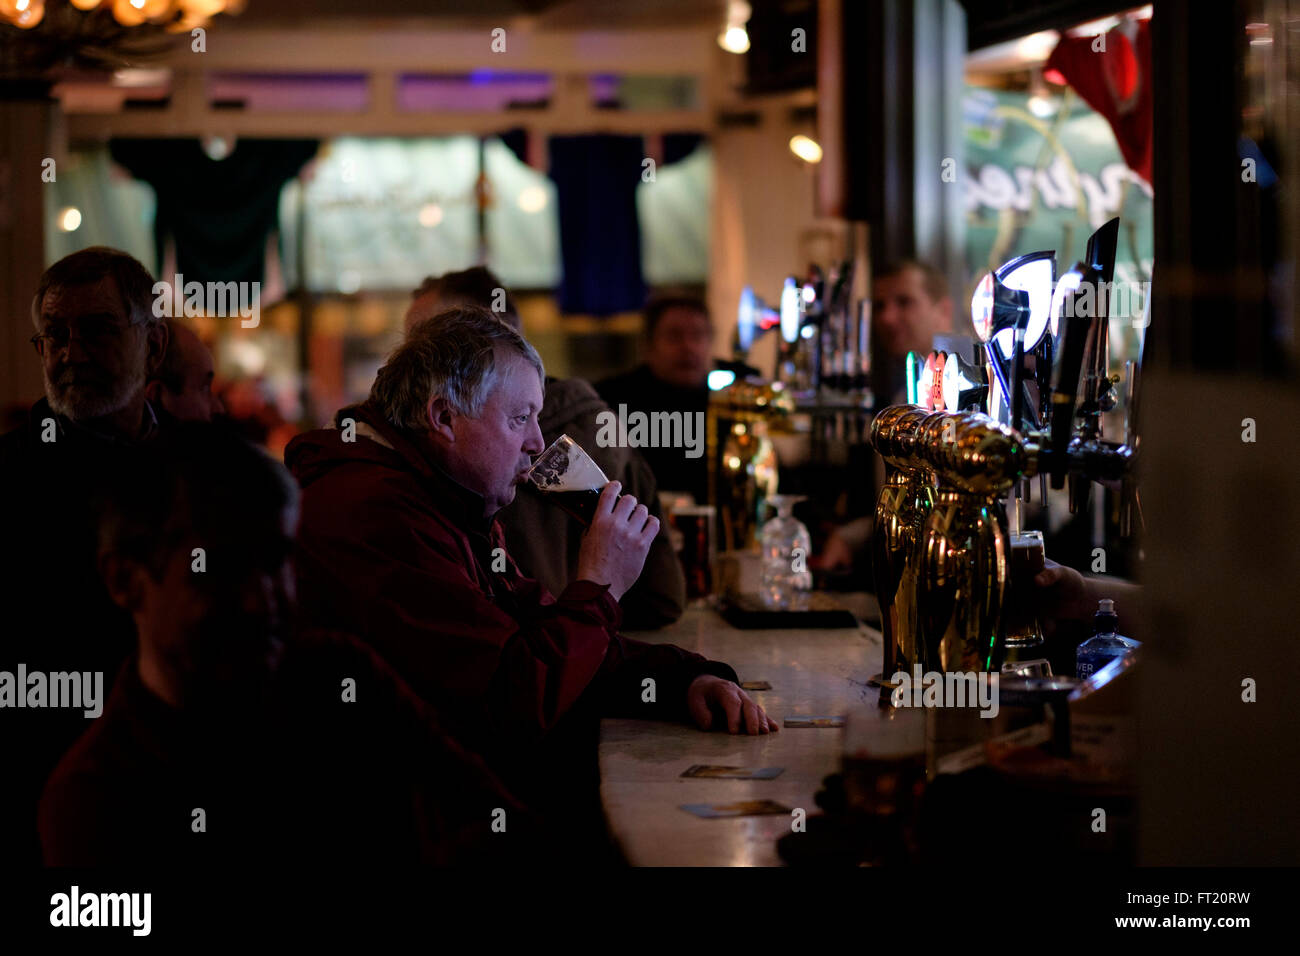 Middle aged man drinking a pint of beer alone in a pub - Stock Image